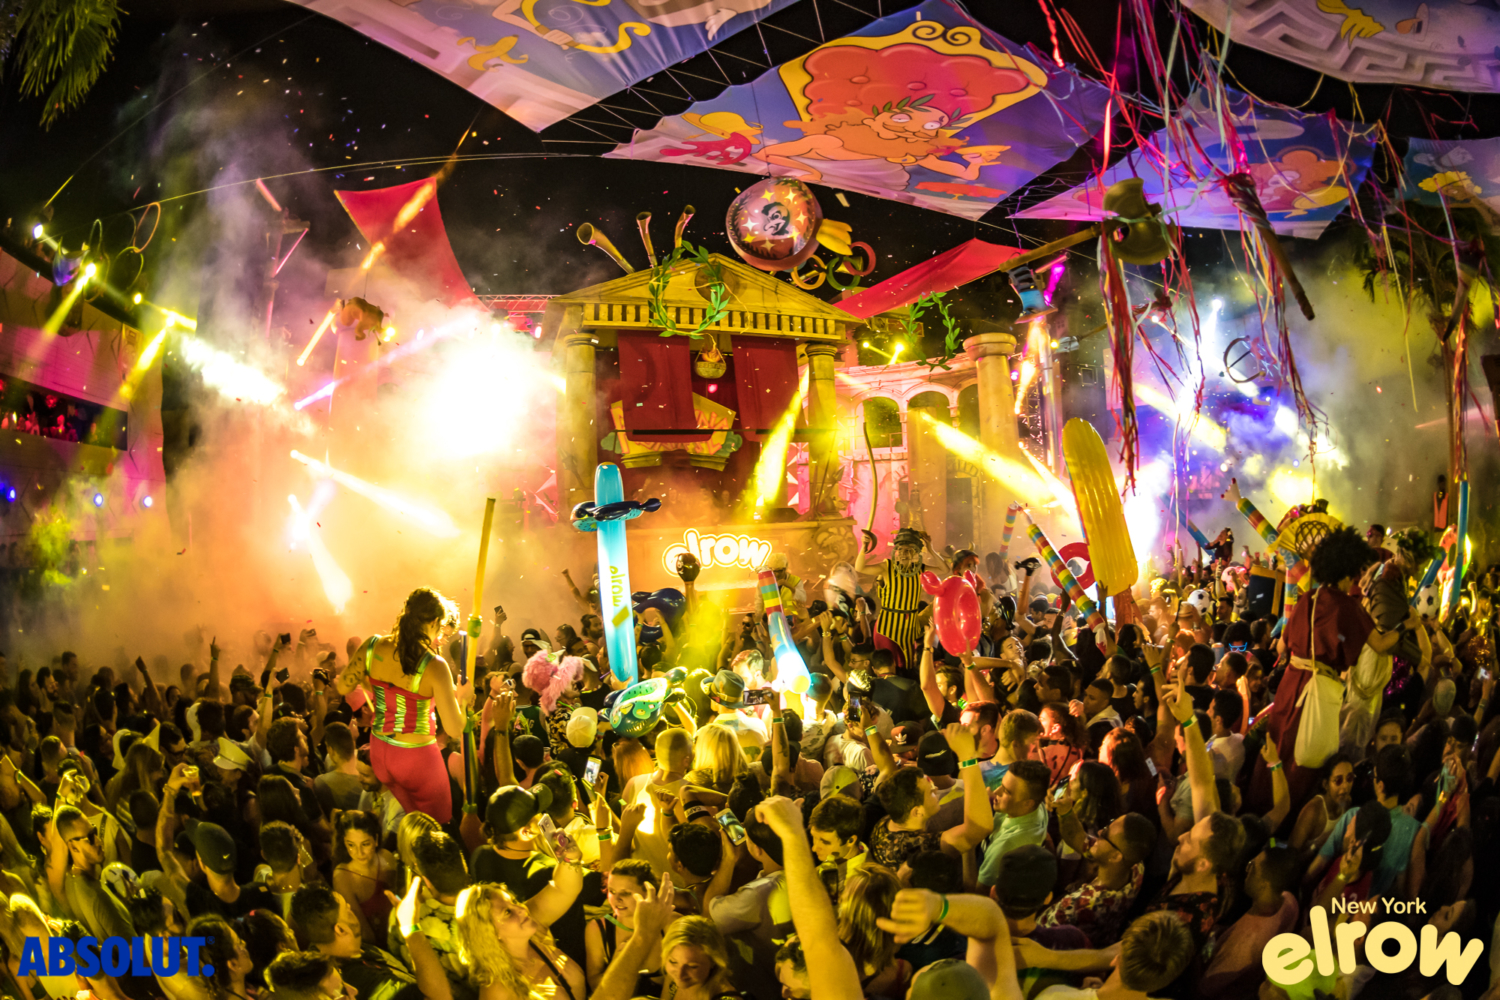 Making magic happen at Elrow Open Air – photos by aLIVE coverageELROW2018 0729 000642 9911 ALIVECOVERAGE